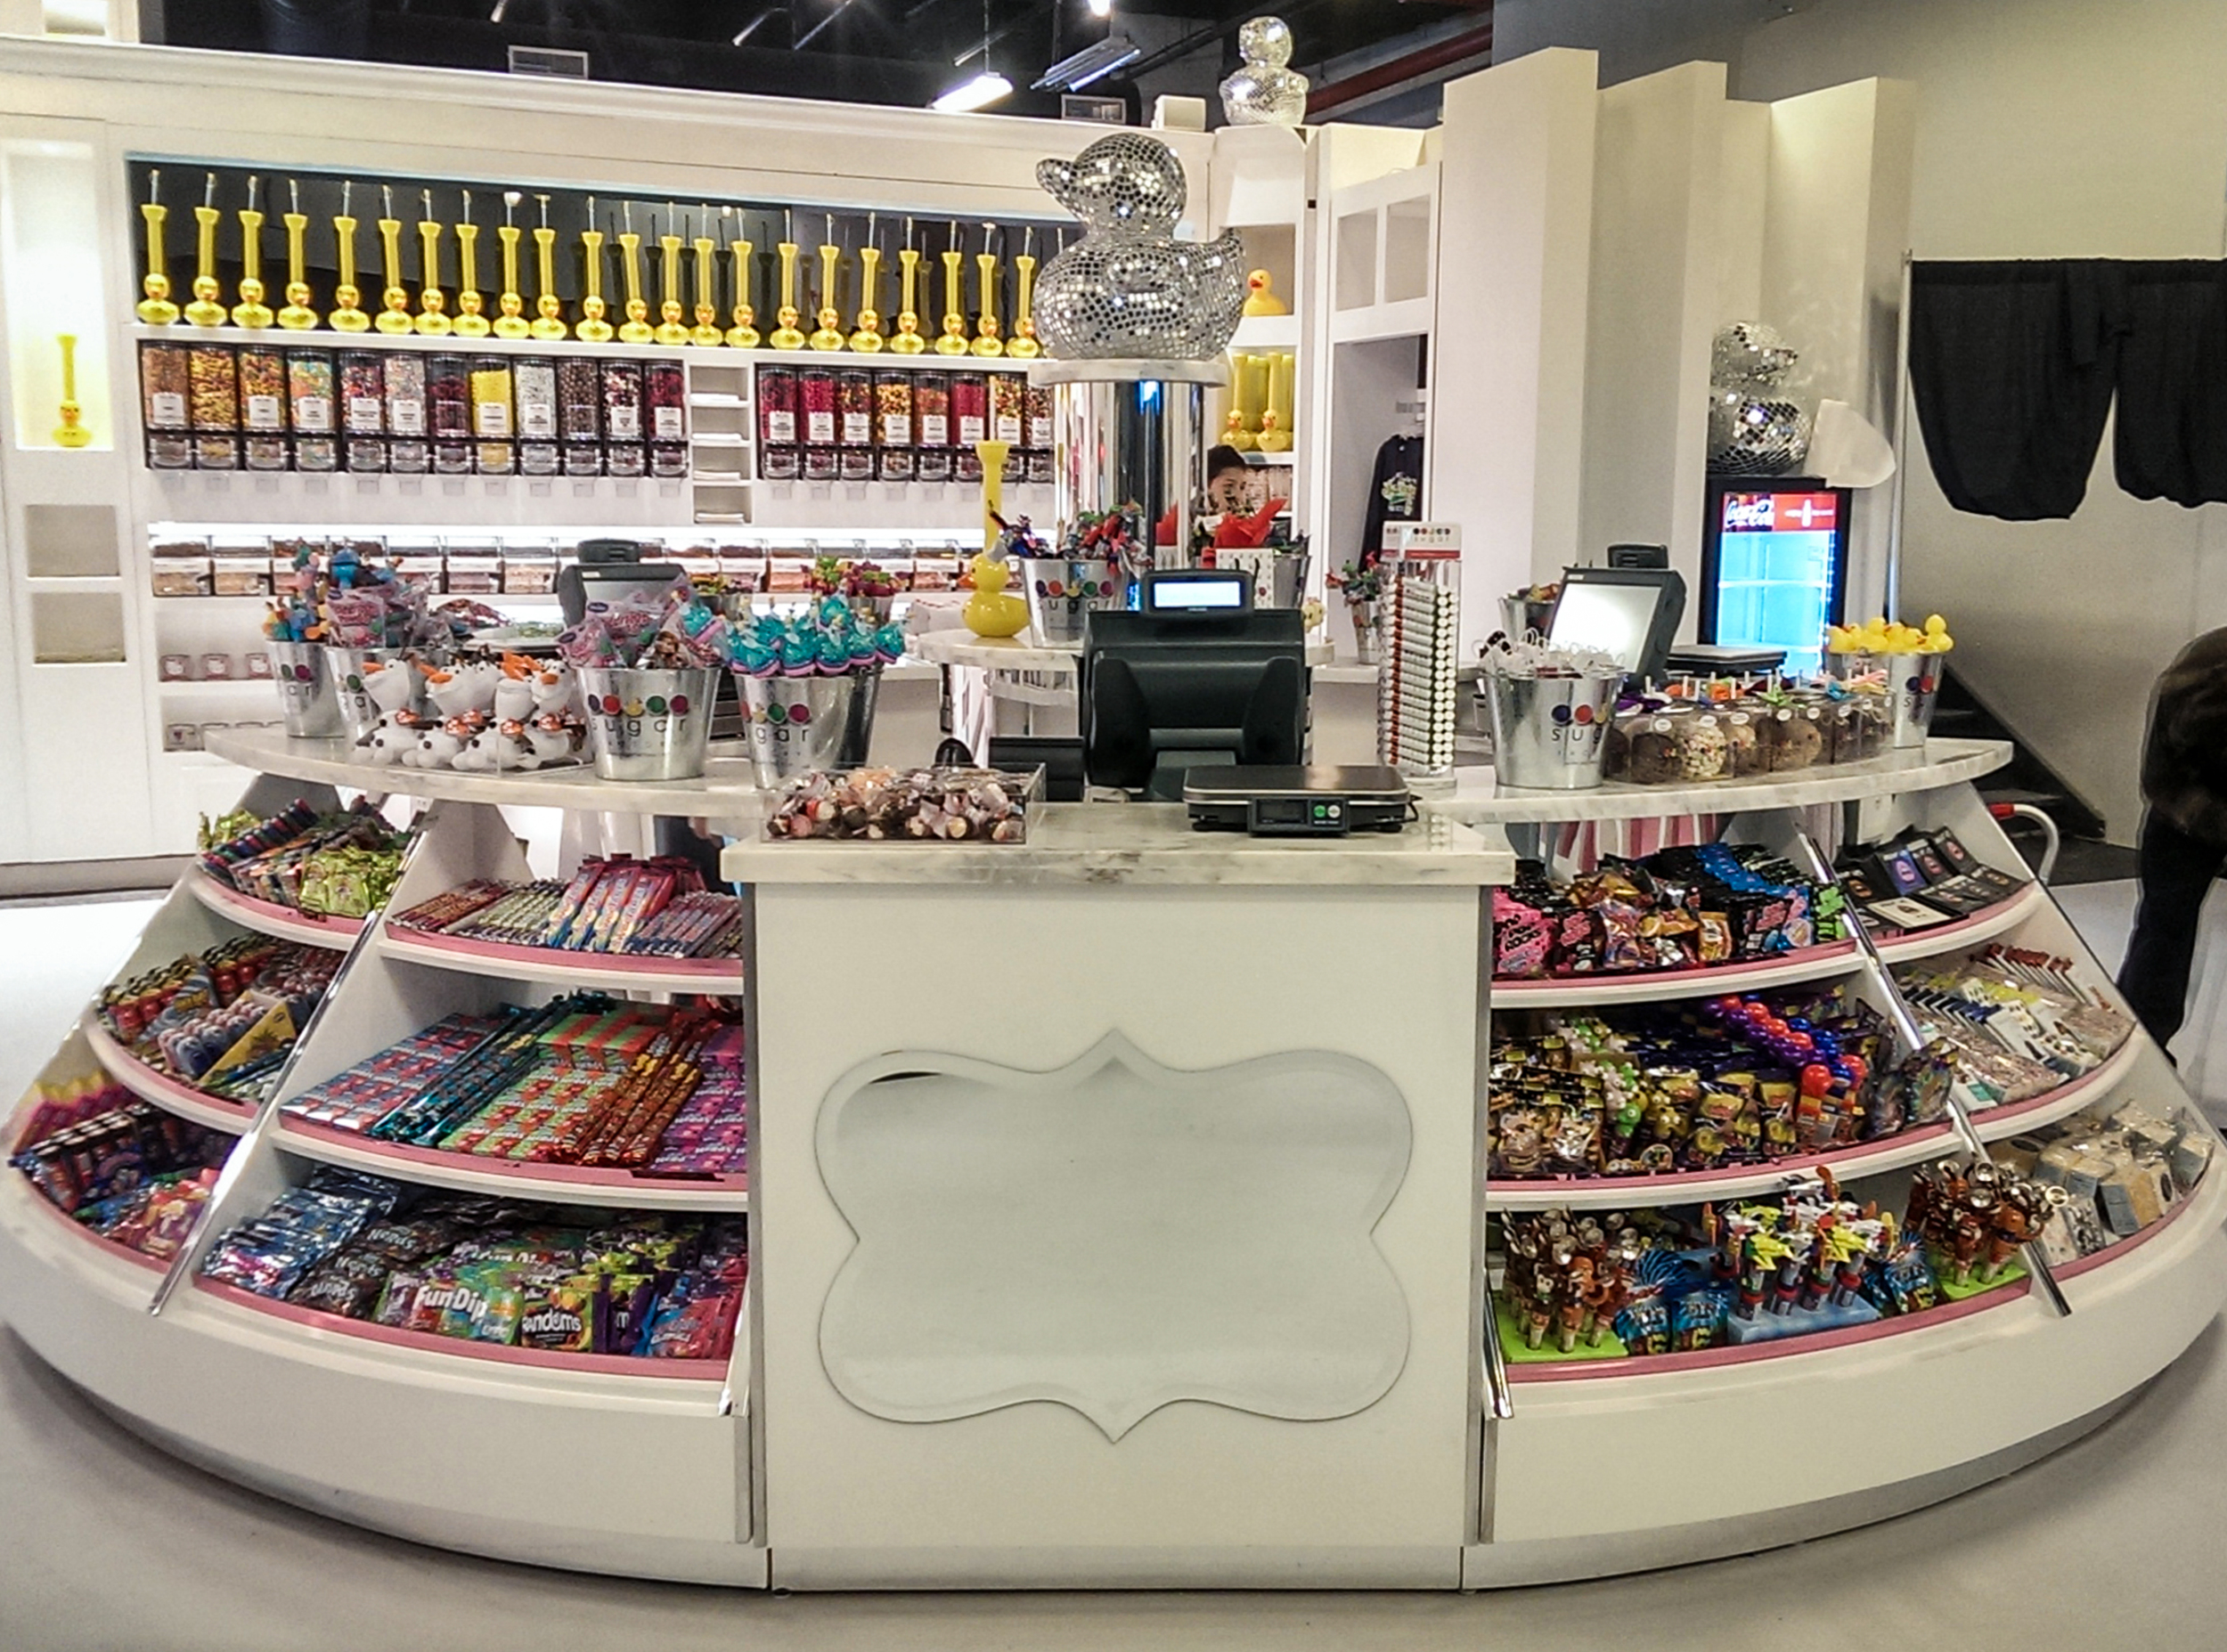 The Sugar Factory @ Barclay's Center